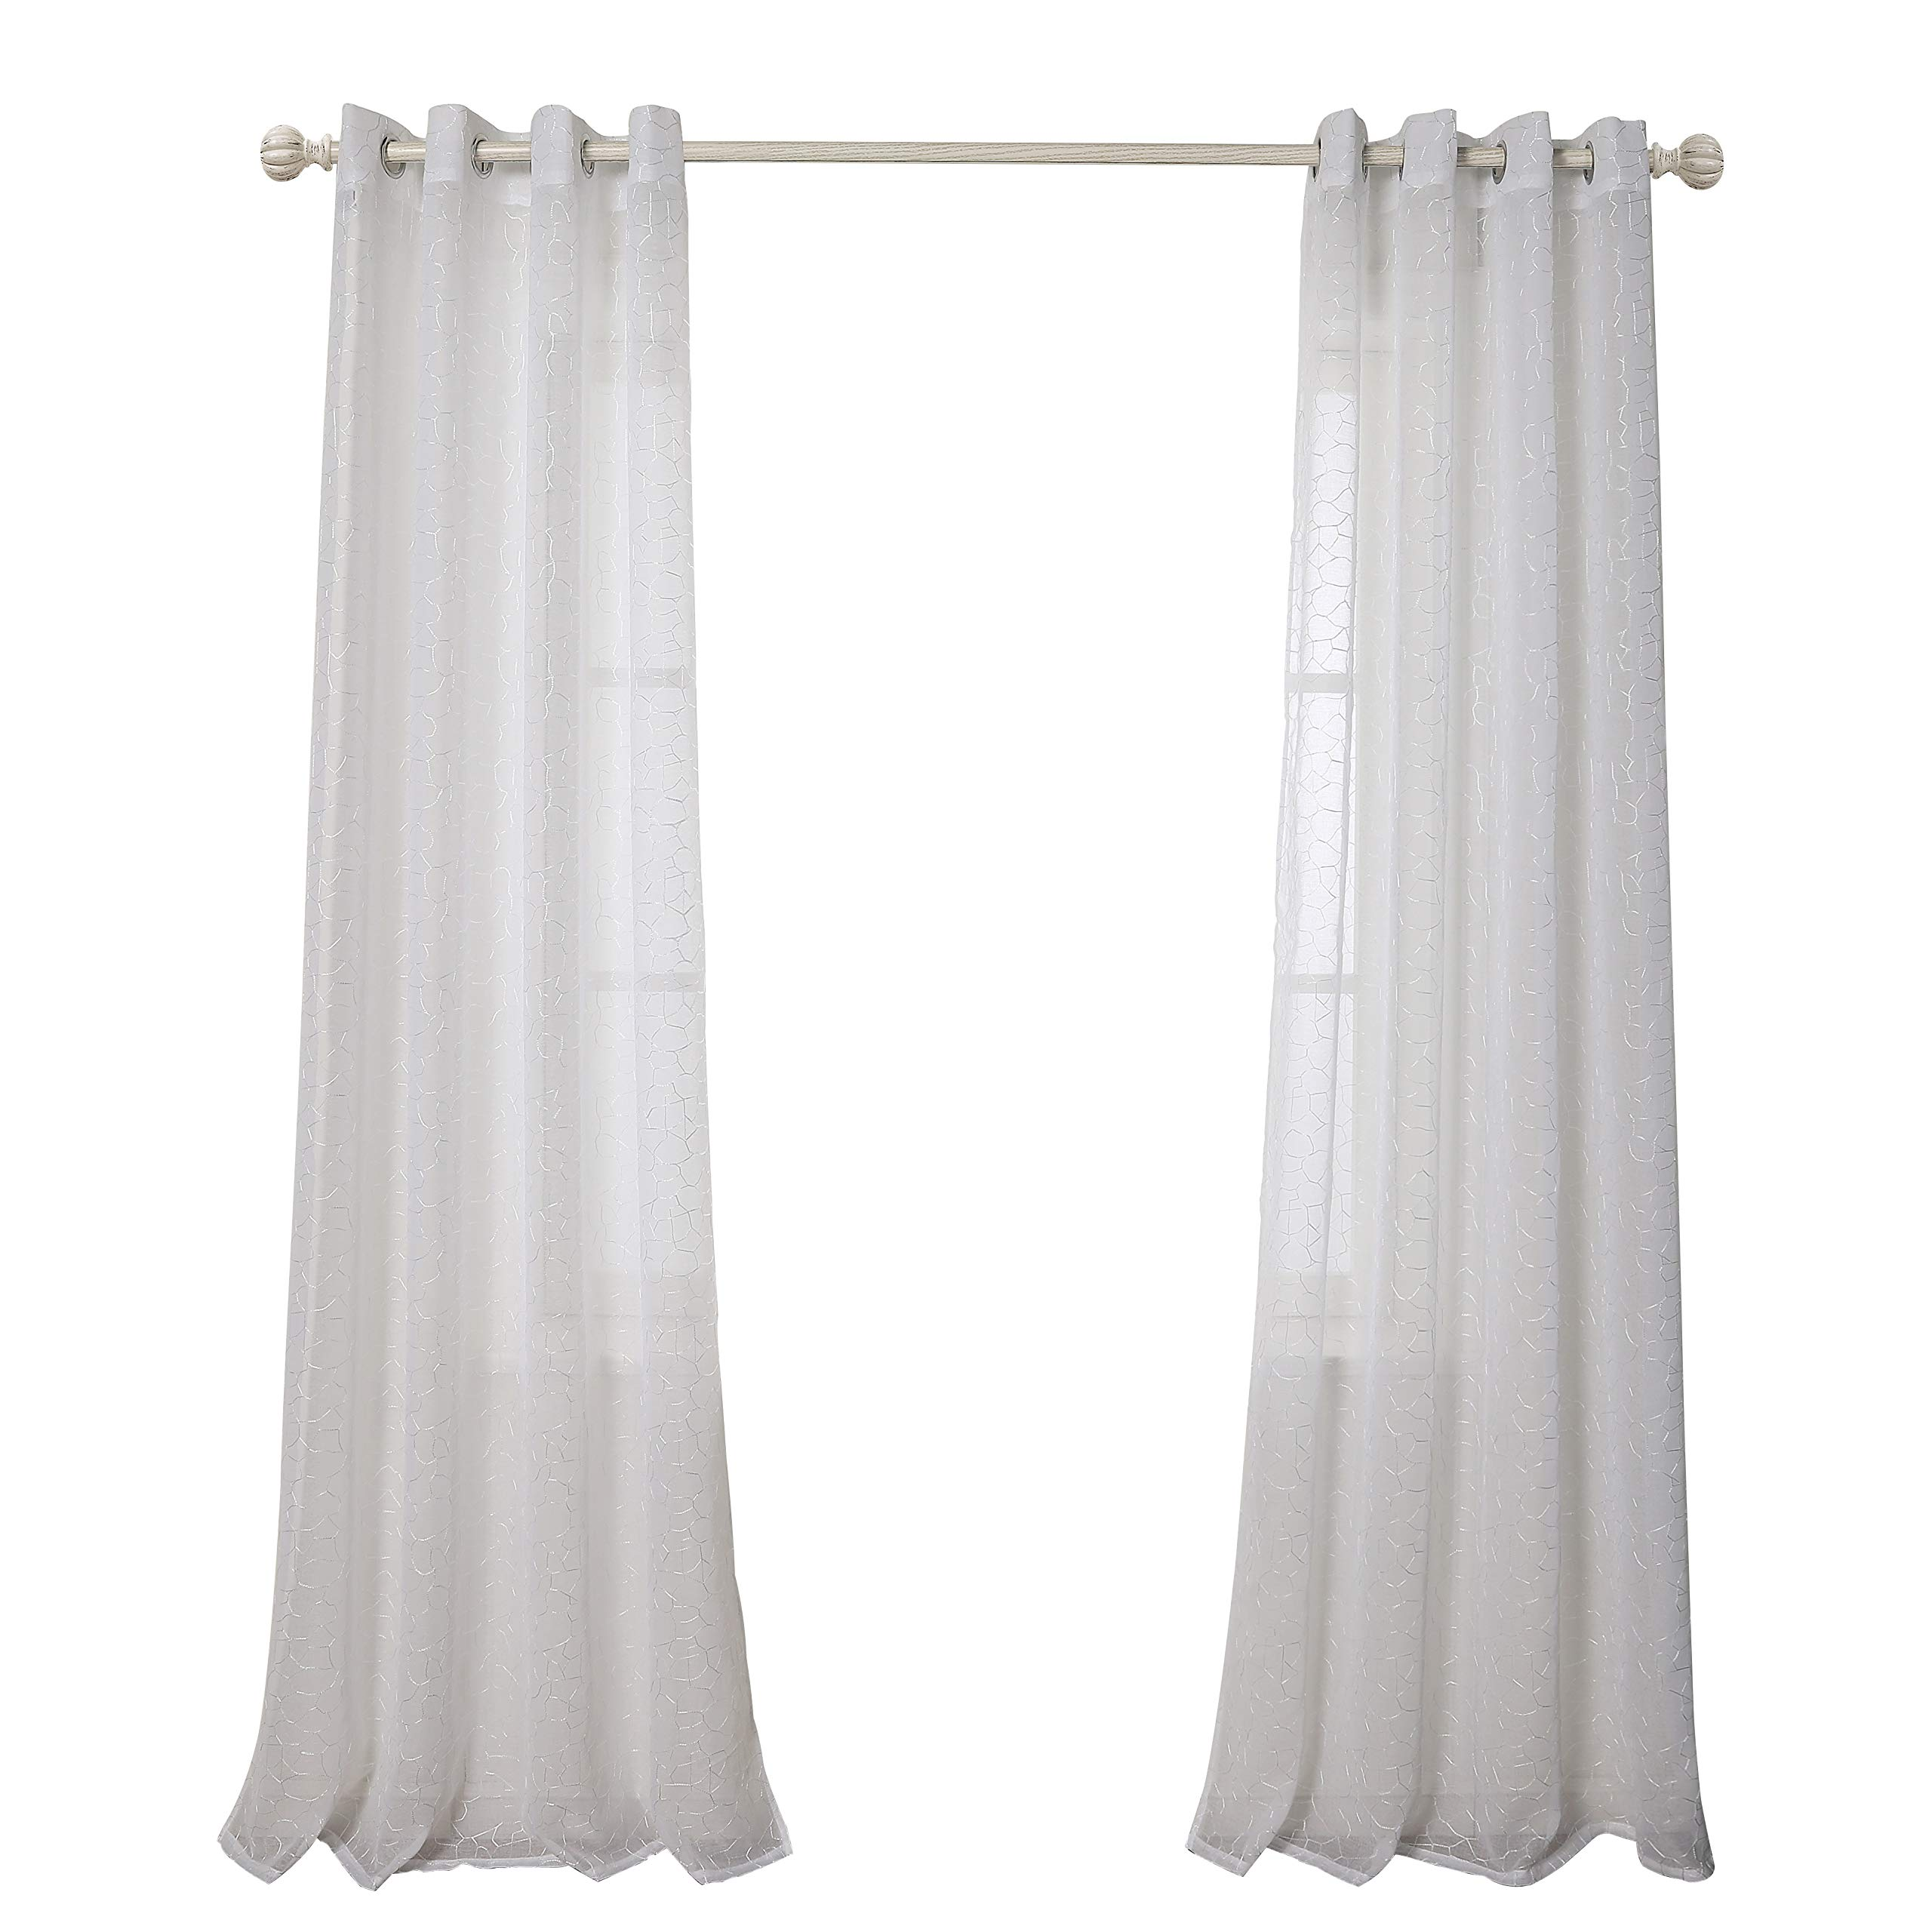 Living Room Curtains White: White Living Room Curtains: Amazon.com